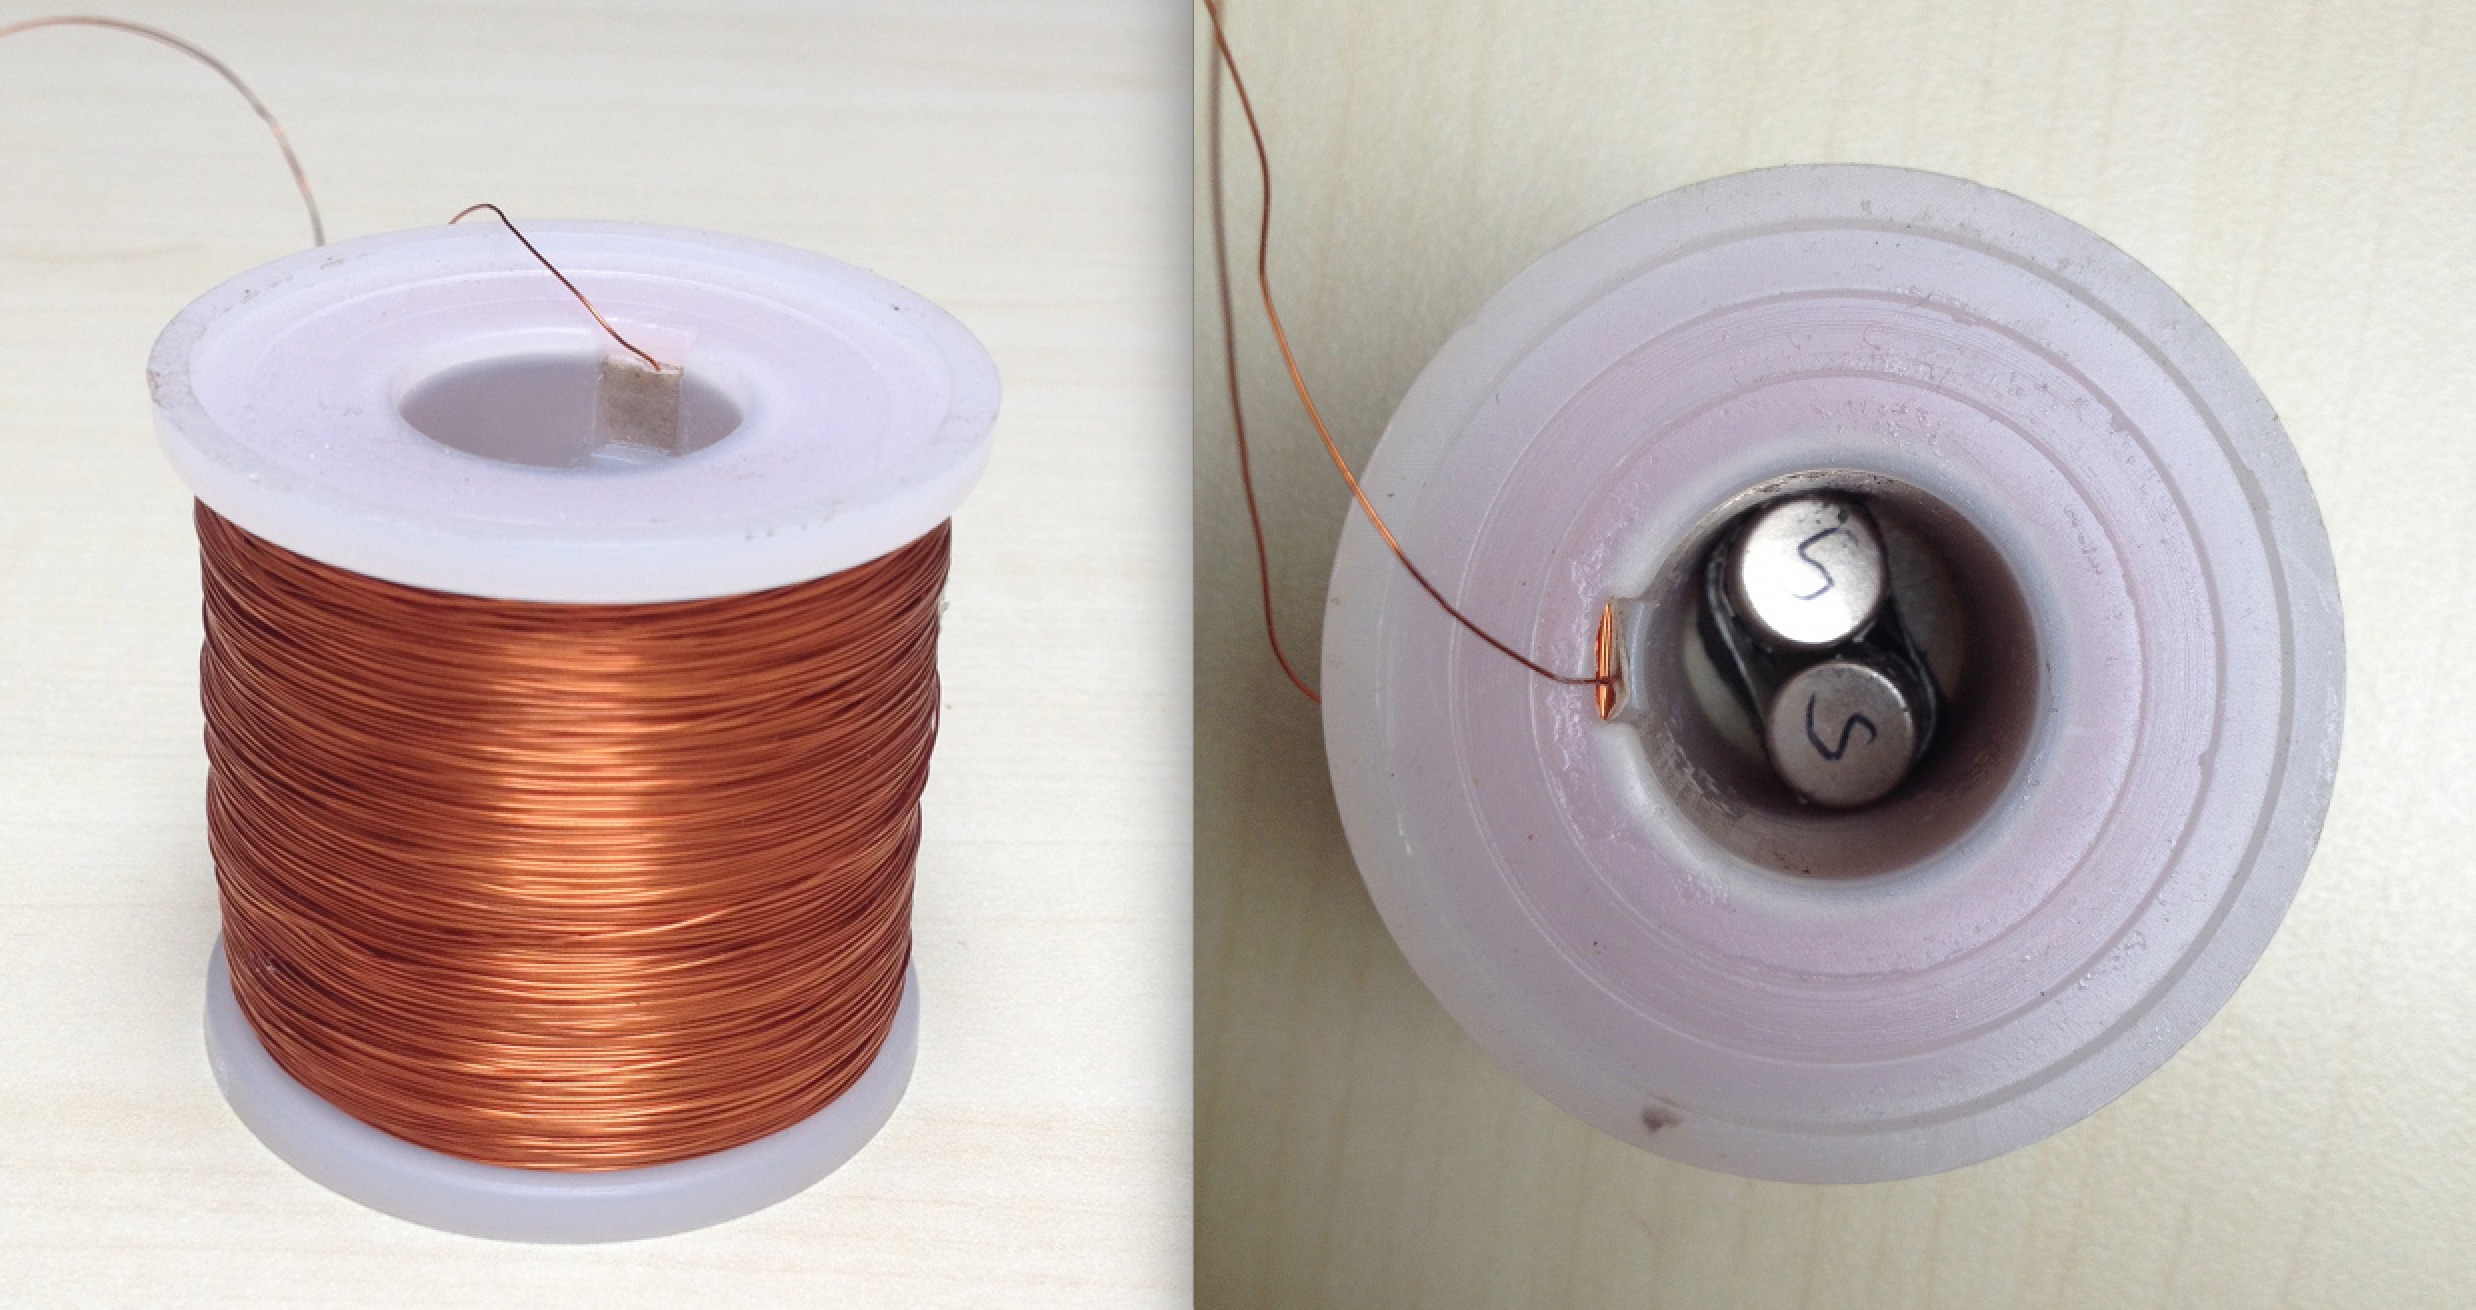 The hand-wounded electromagnets, with the permanent magnets inside the plastic reel.